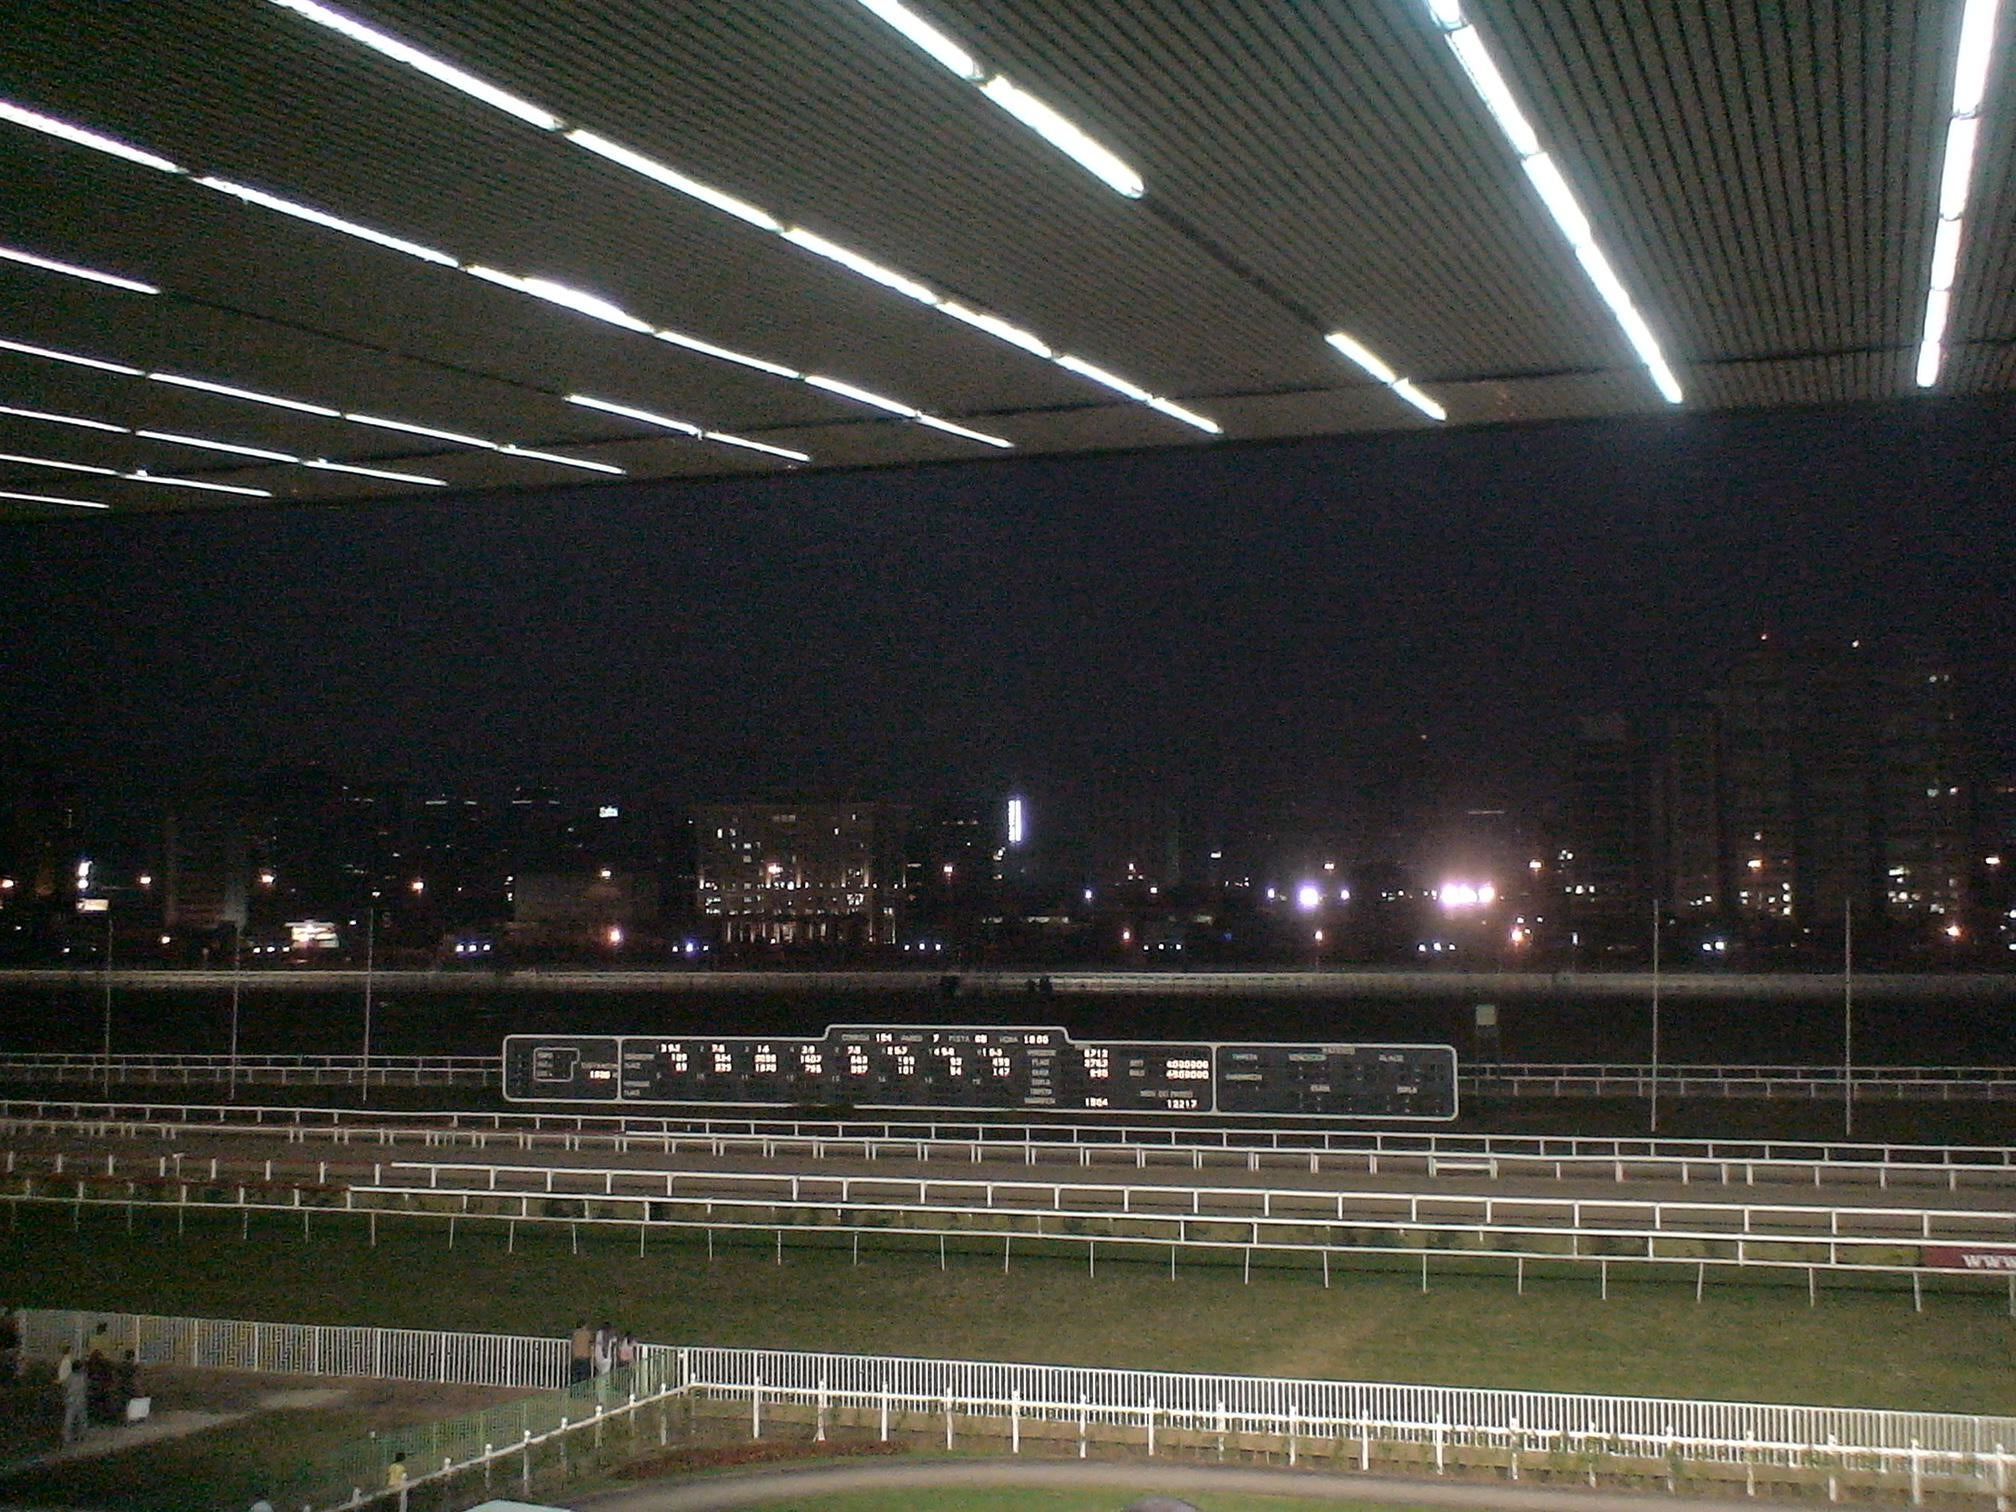 Fotografias de jockey club galeria de fotos for Puerta 4 jockey club